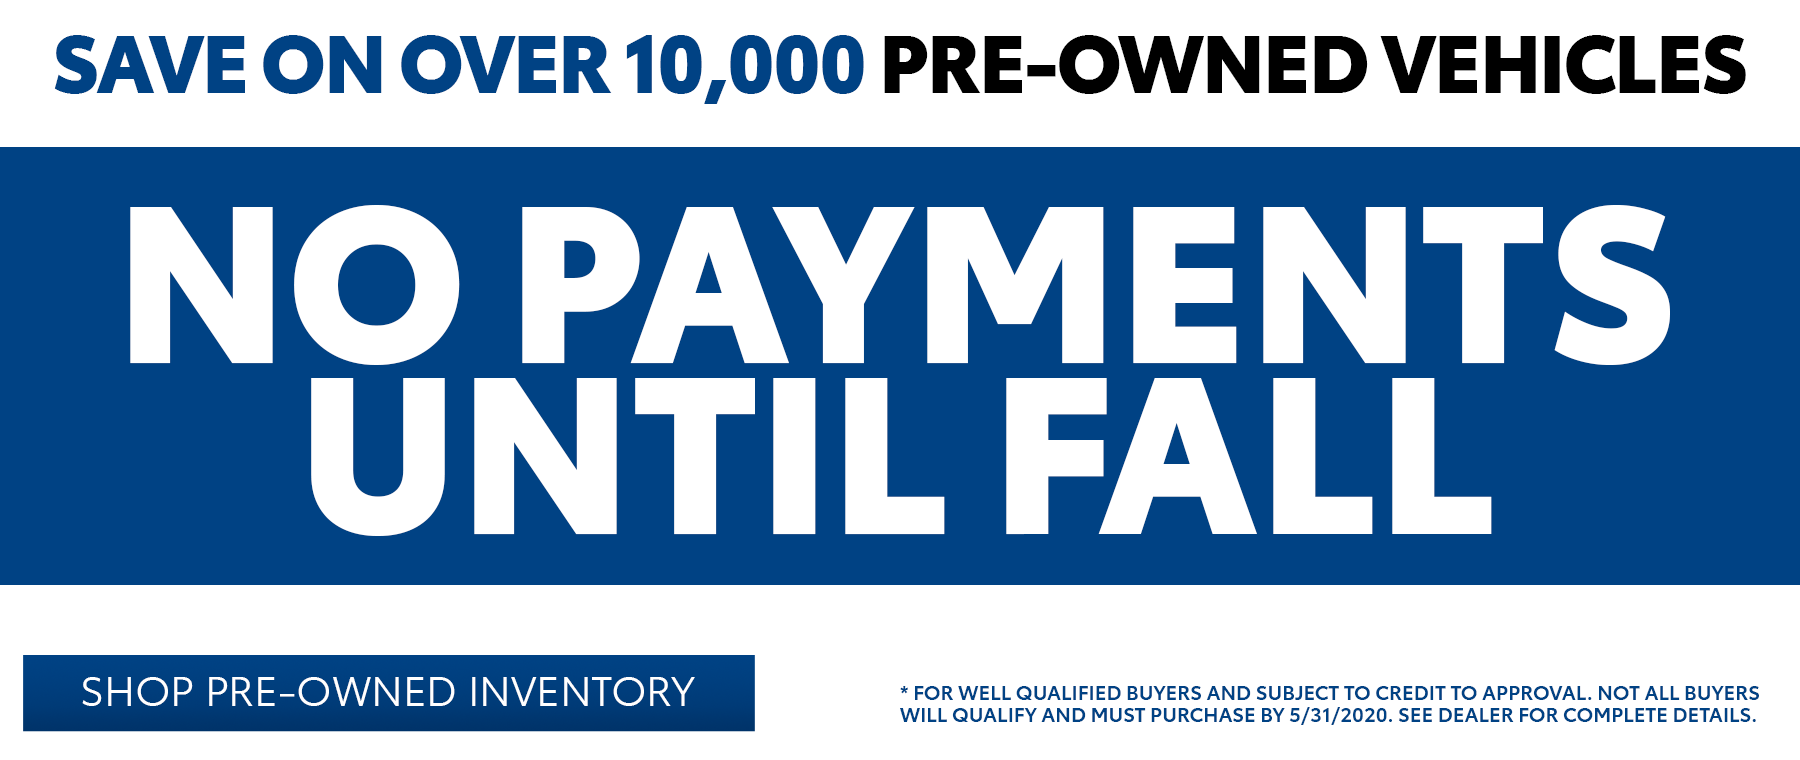 No Payments until fall on pre-owned vehicles